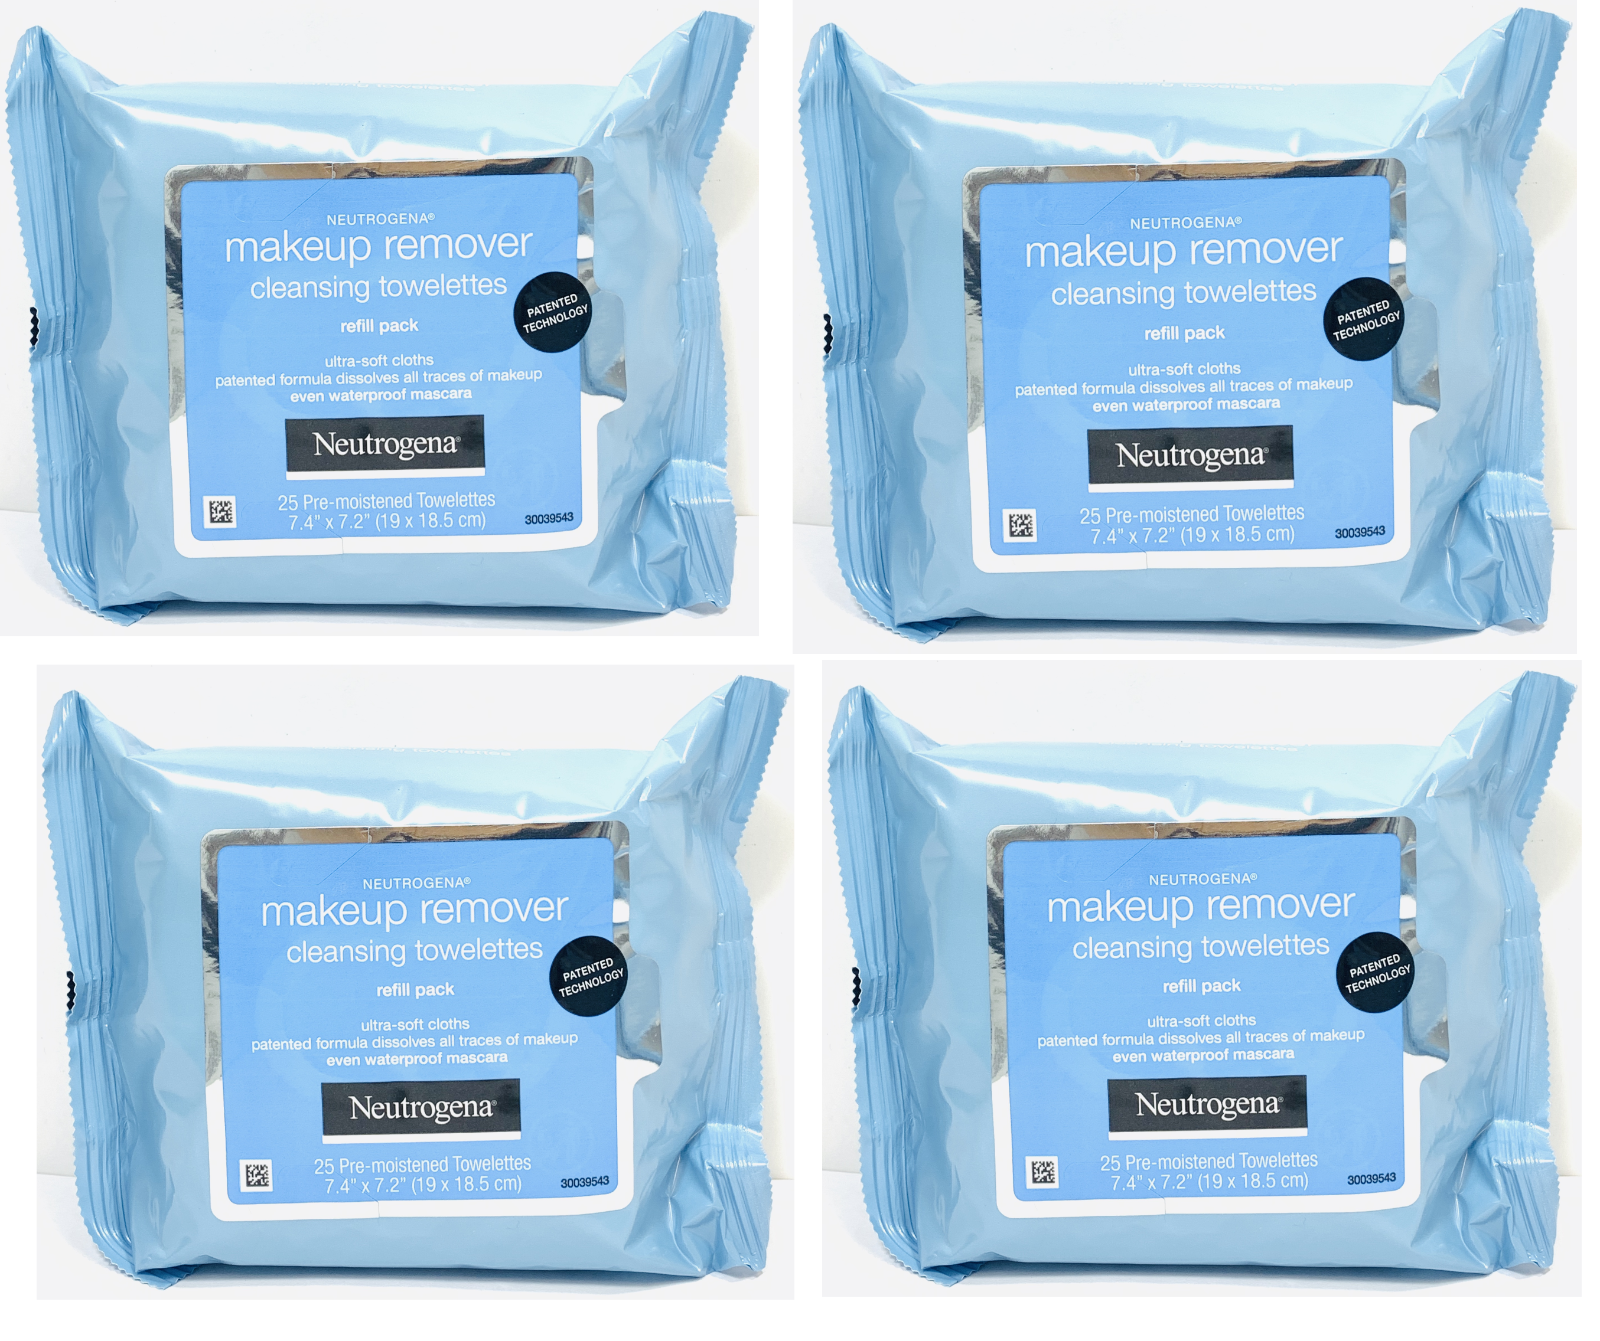 Neutrogena Makeup Remover Facial Towelettes Wipes 20, 25, 50